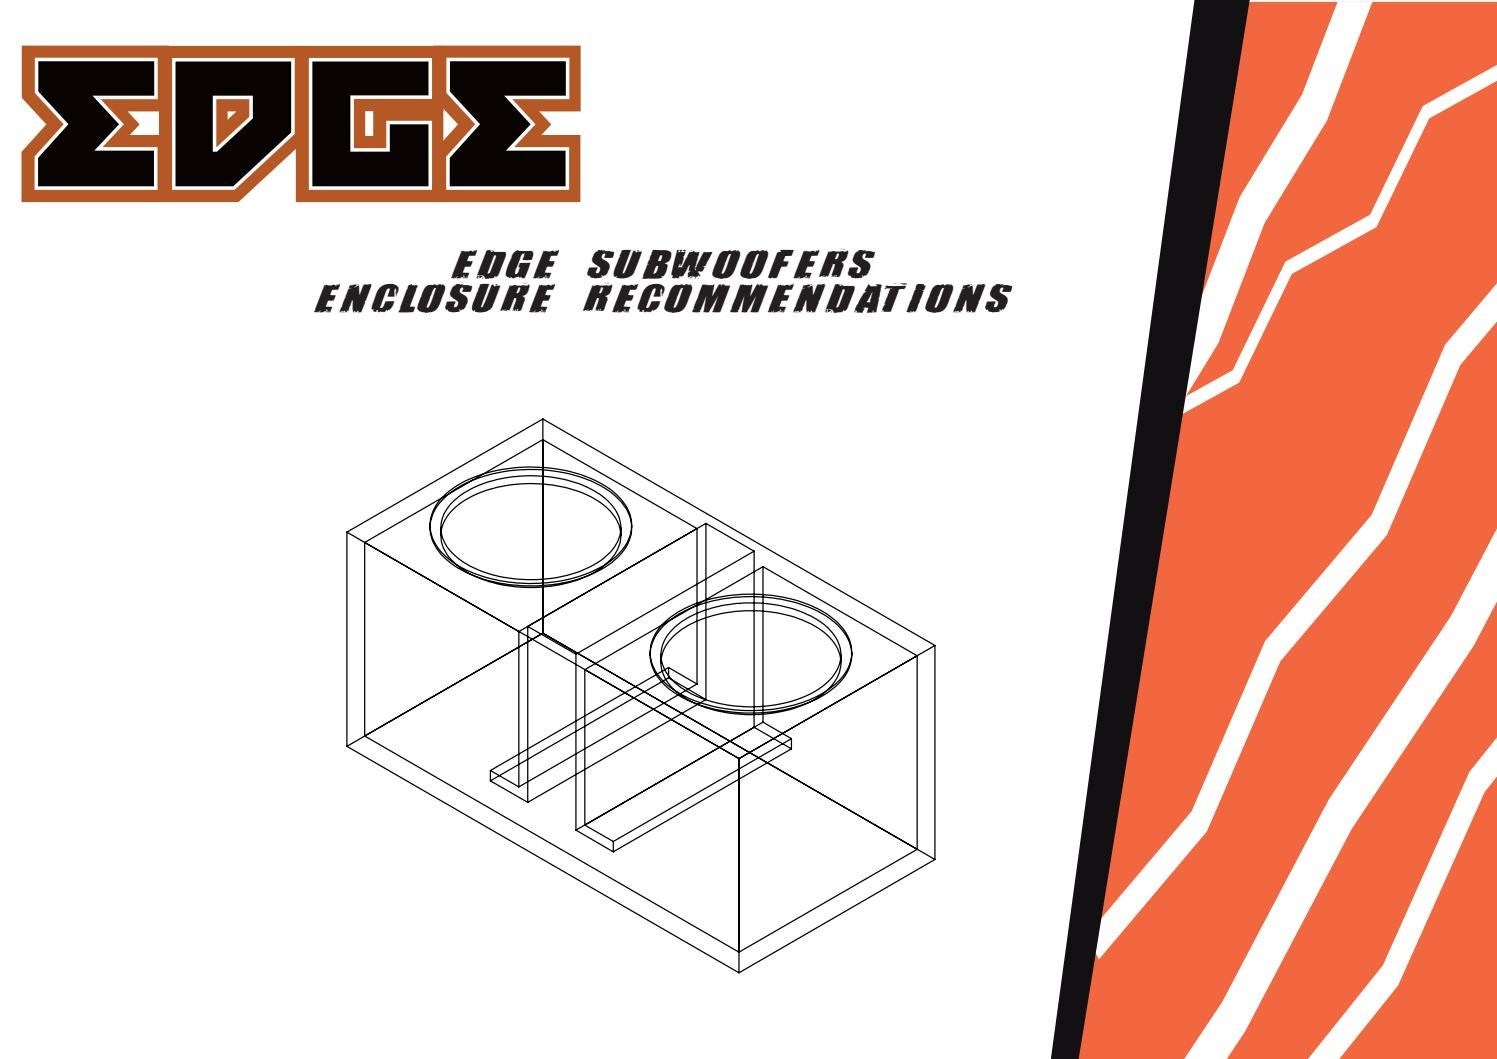 Edge Subwoofer Enclosure Recommended Sizes by VIBE AUDIO - issuu